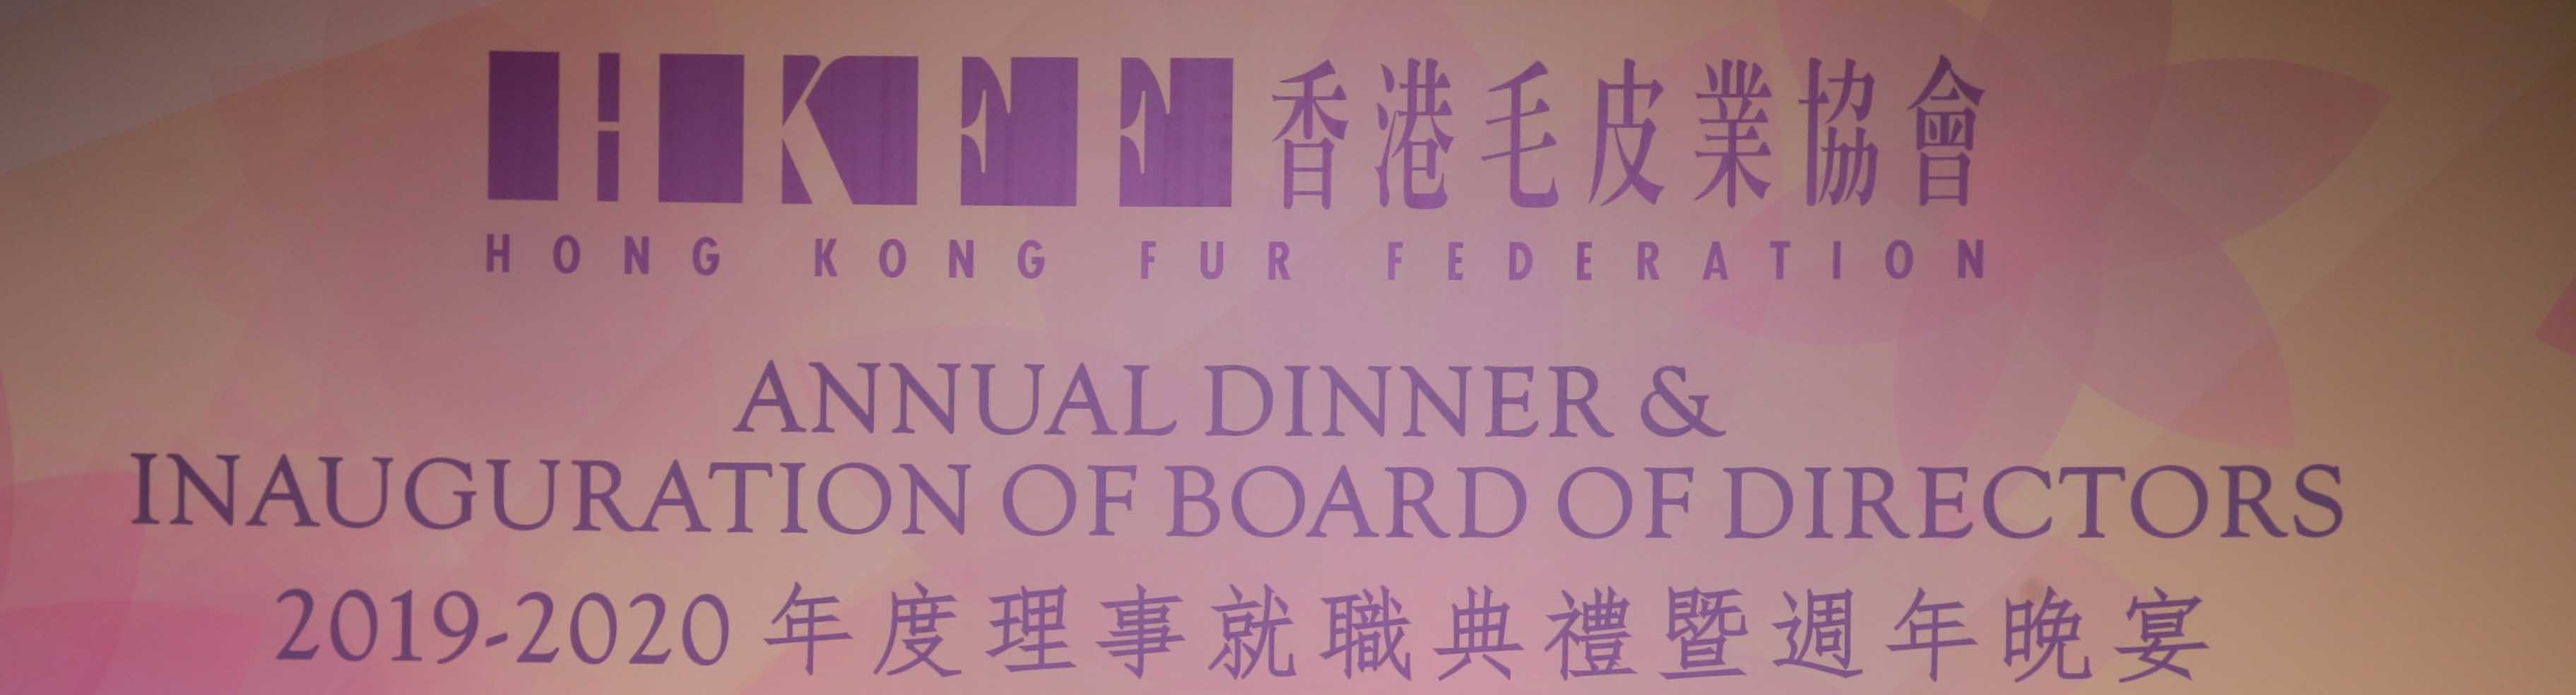 New Chairman For Hong Kong Fur Federation